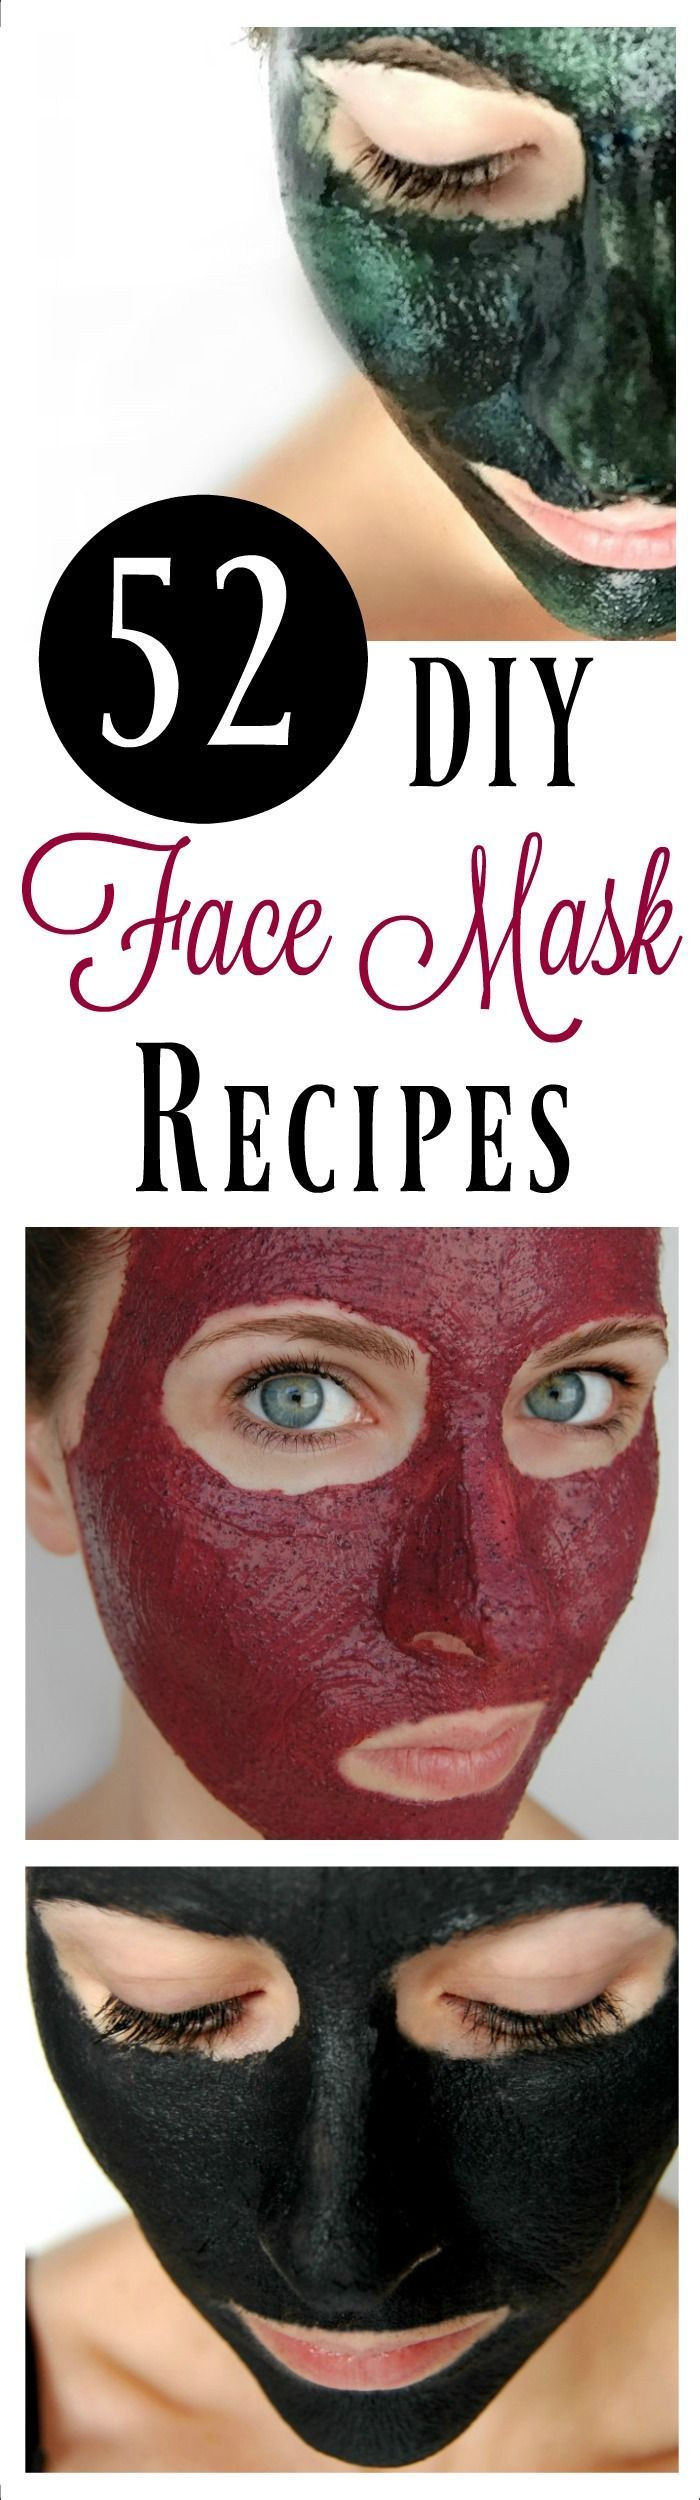 DIY face masks are incredibly easy to make and you likely already have the ingredients to make them! Here are 52 DIY face masks for you to make! That's one for each week of the year!